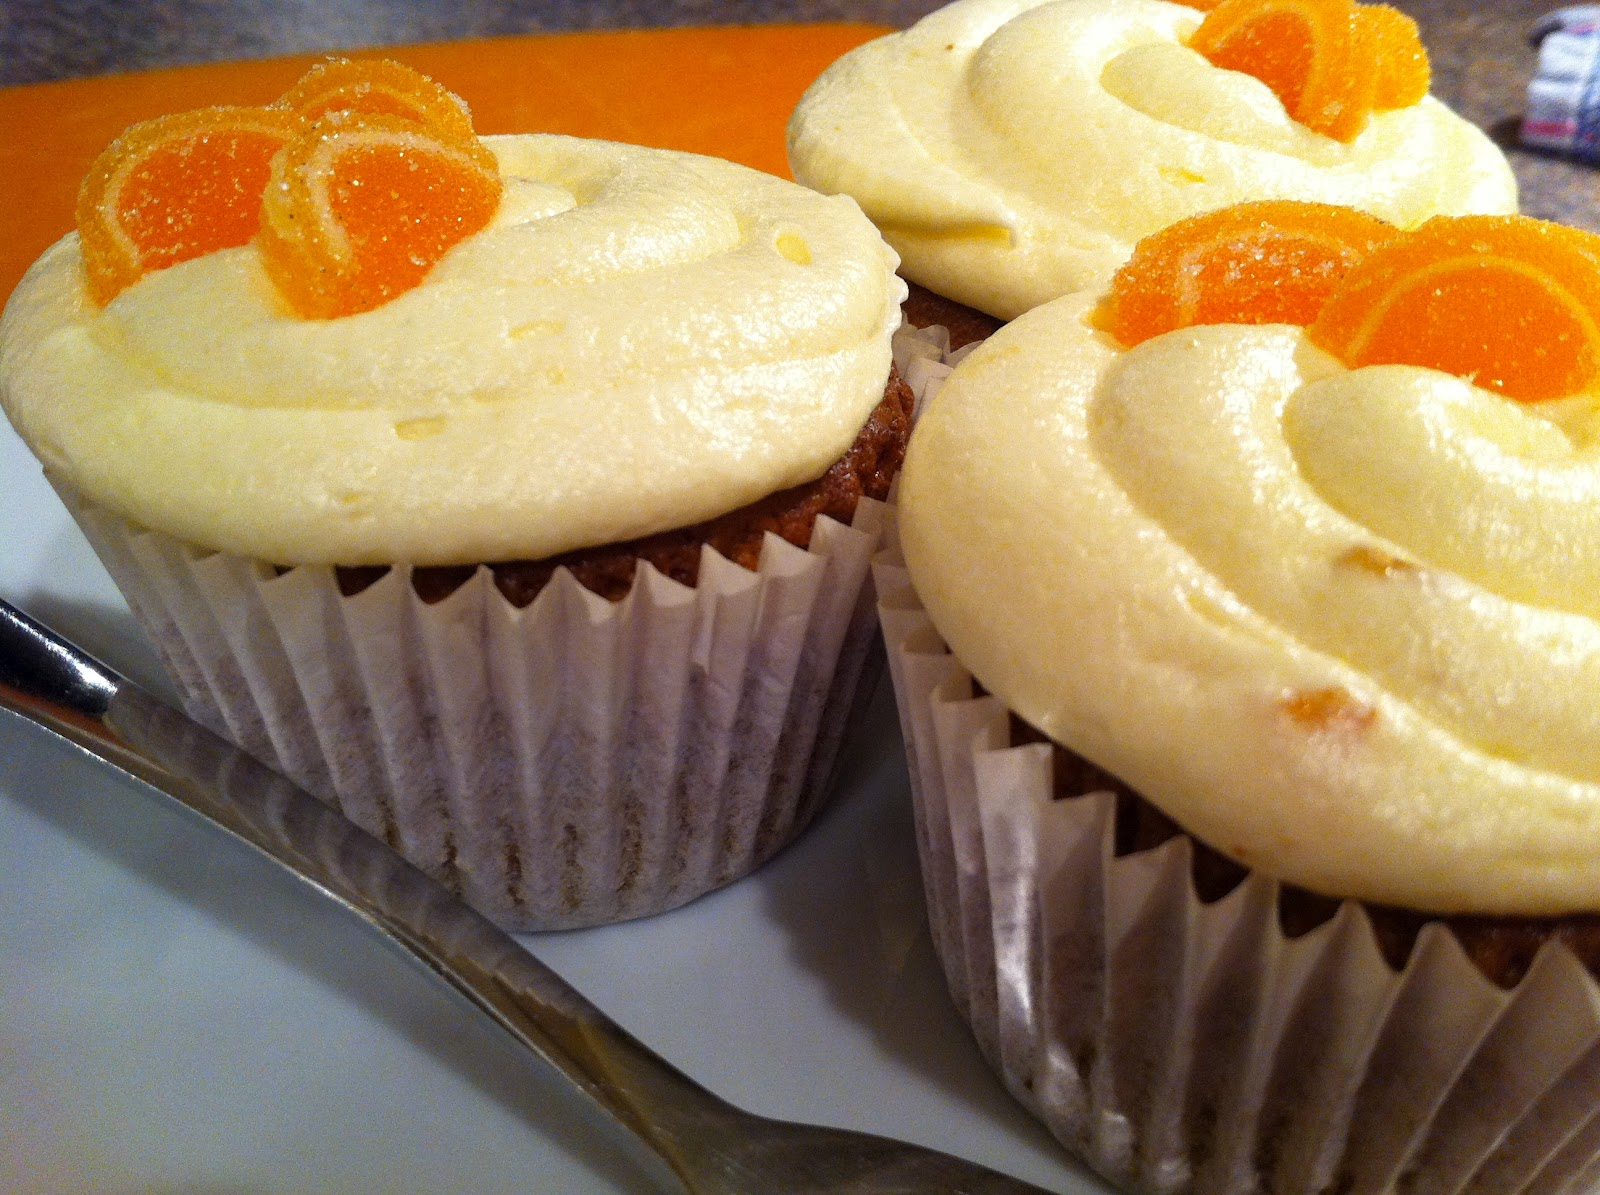 The Cake Shack: Carrot, Orange & Ginger cupcakes